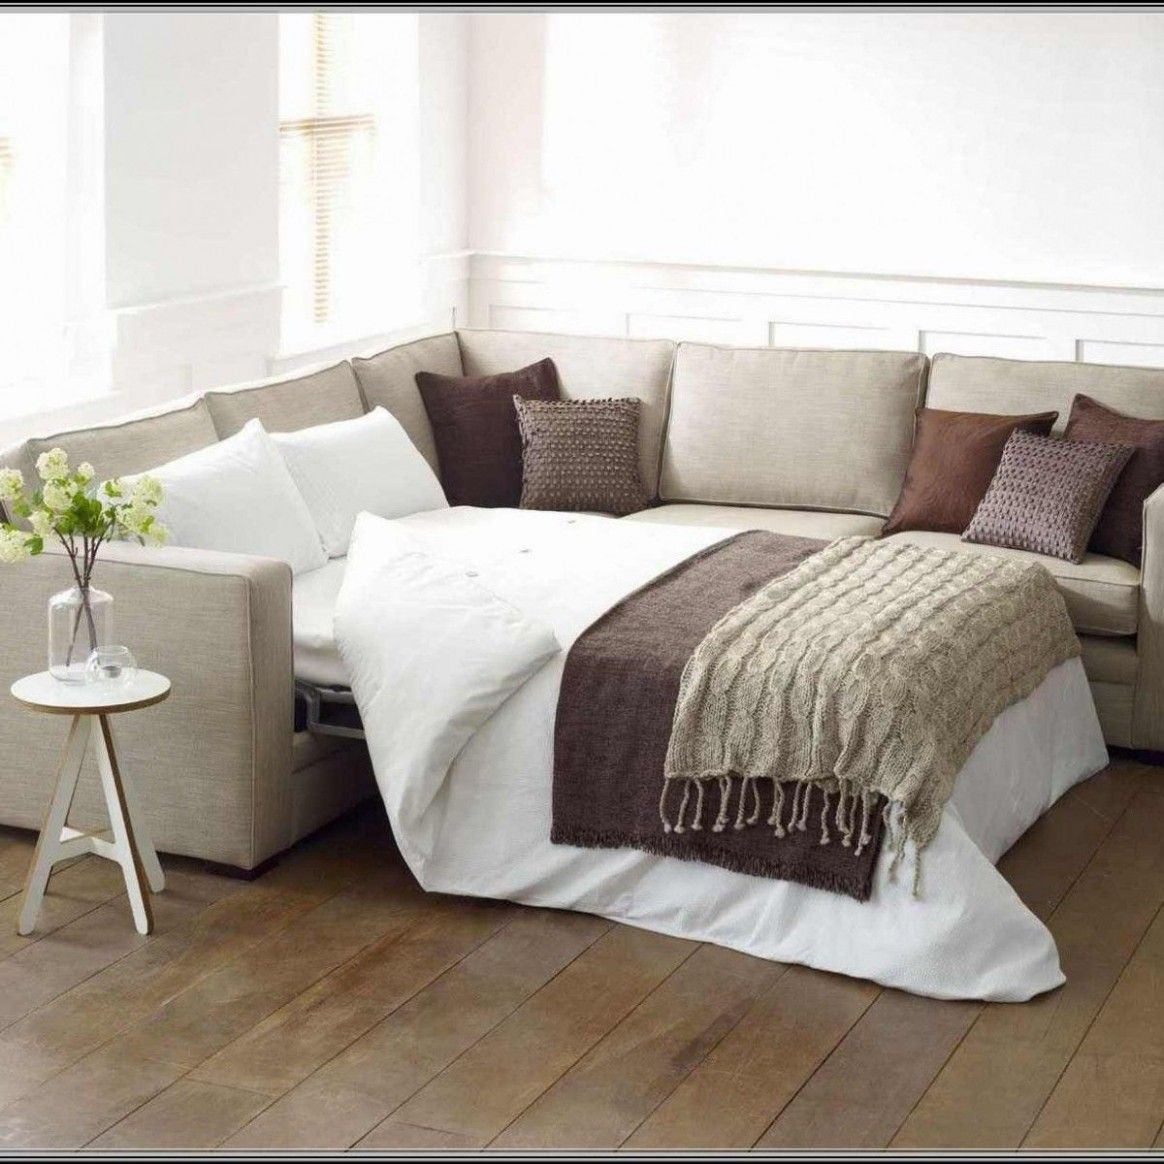 This Is How Small Sofa Beds For Small Rooms Will Look Like